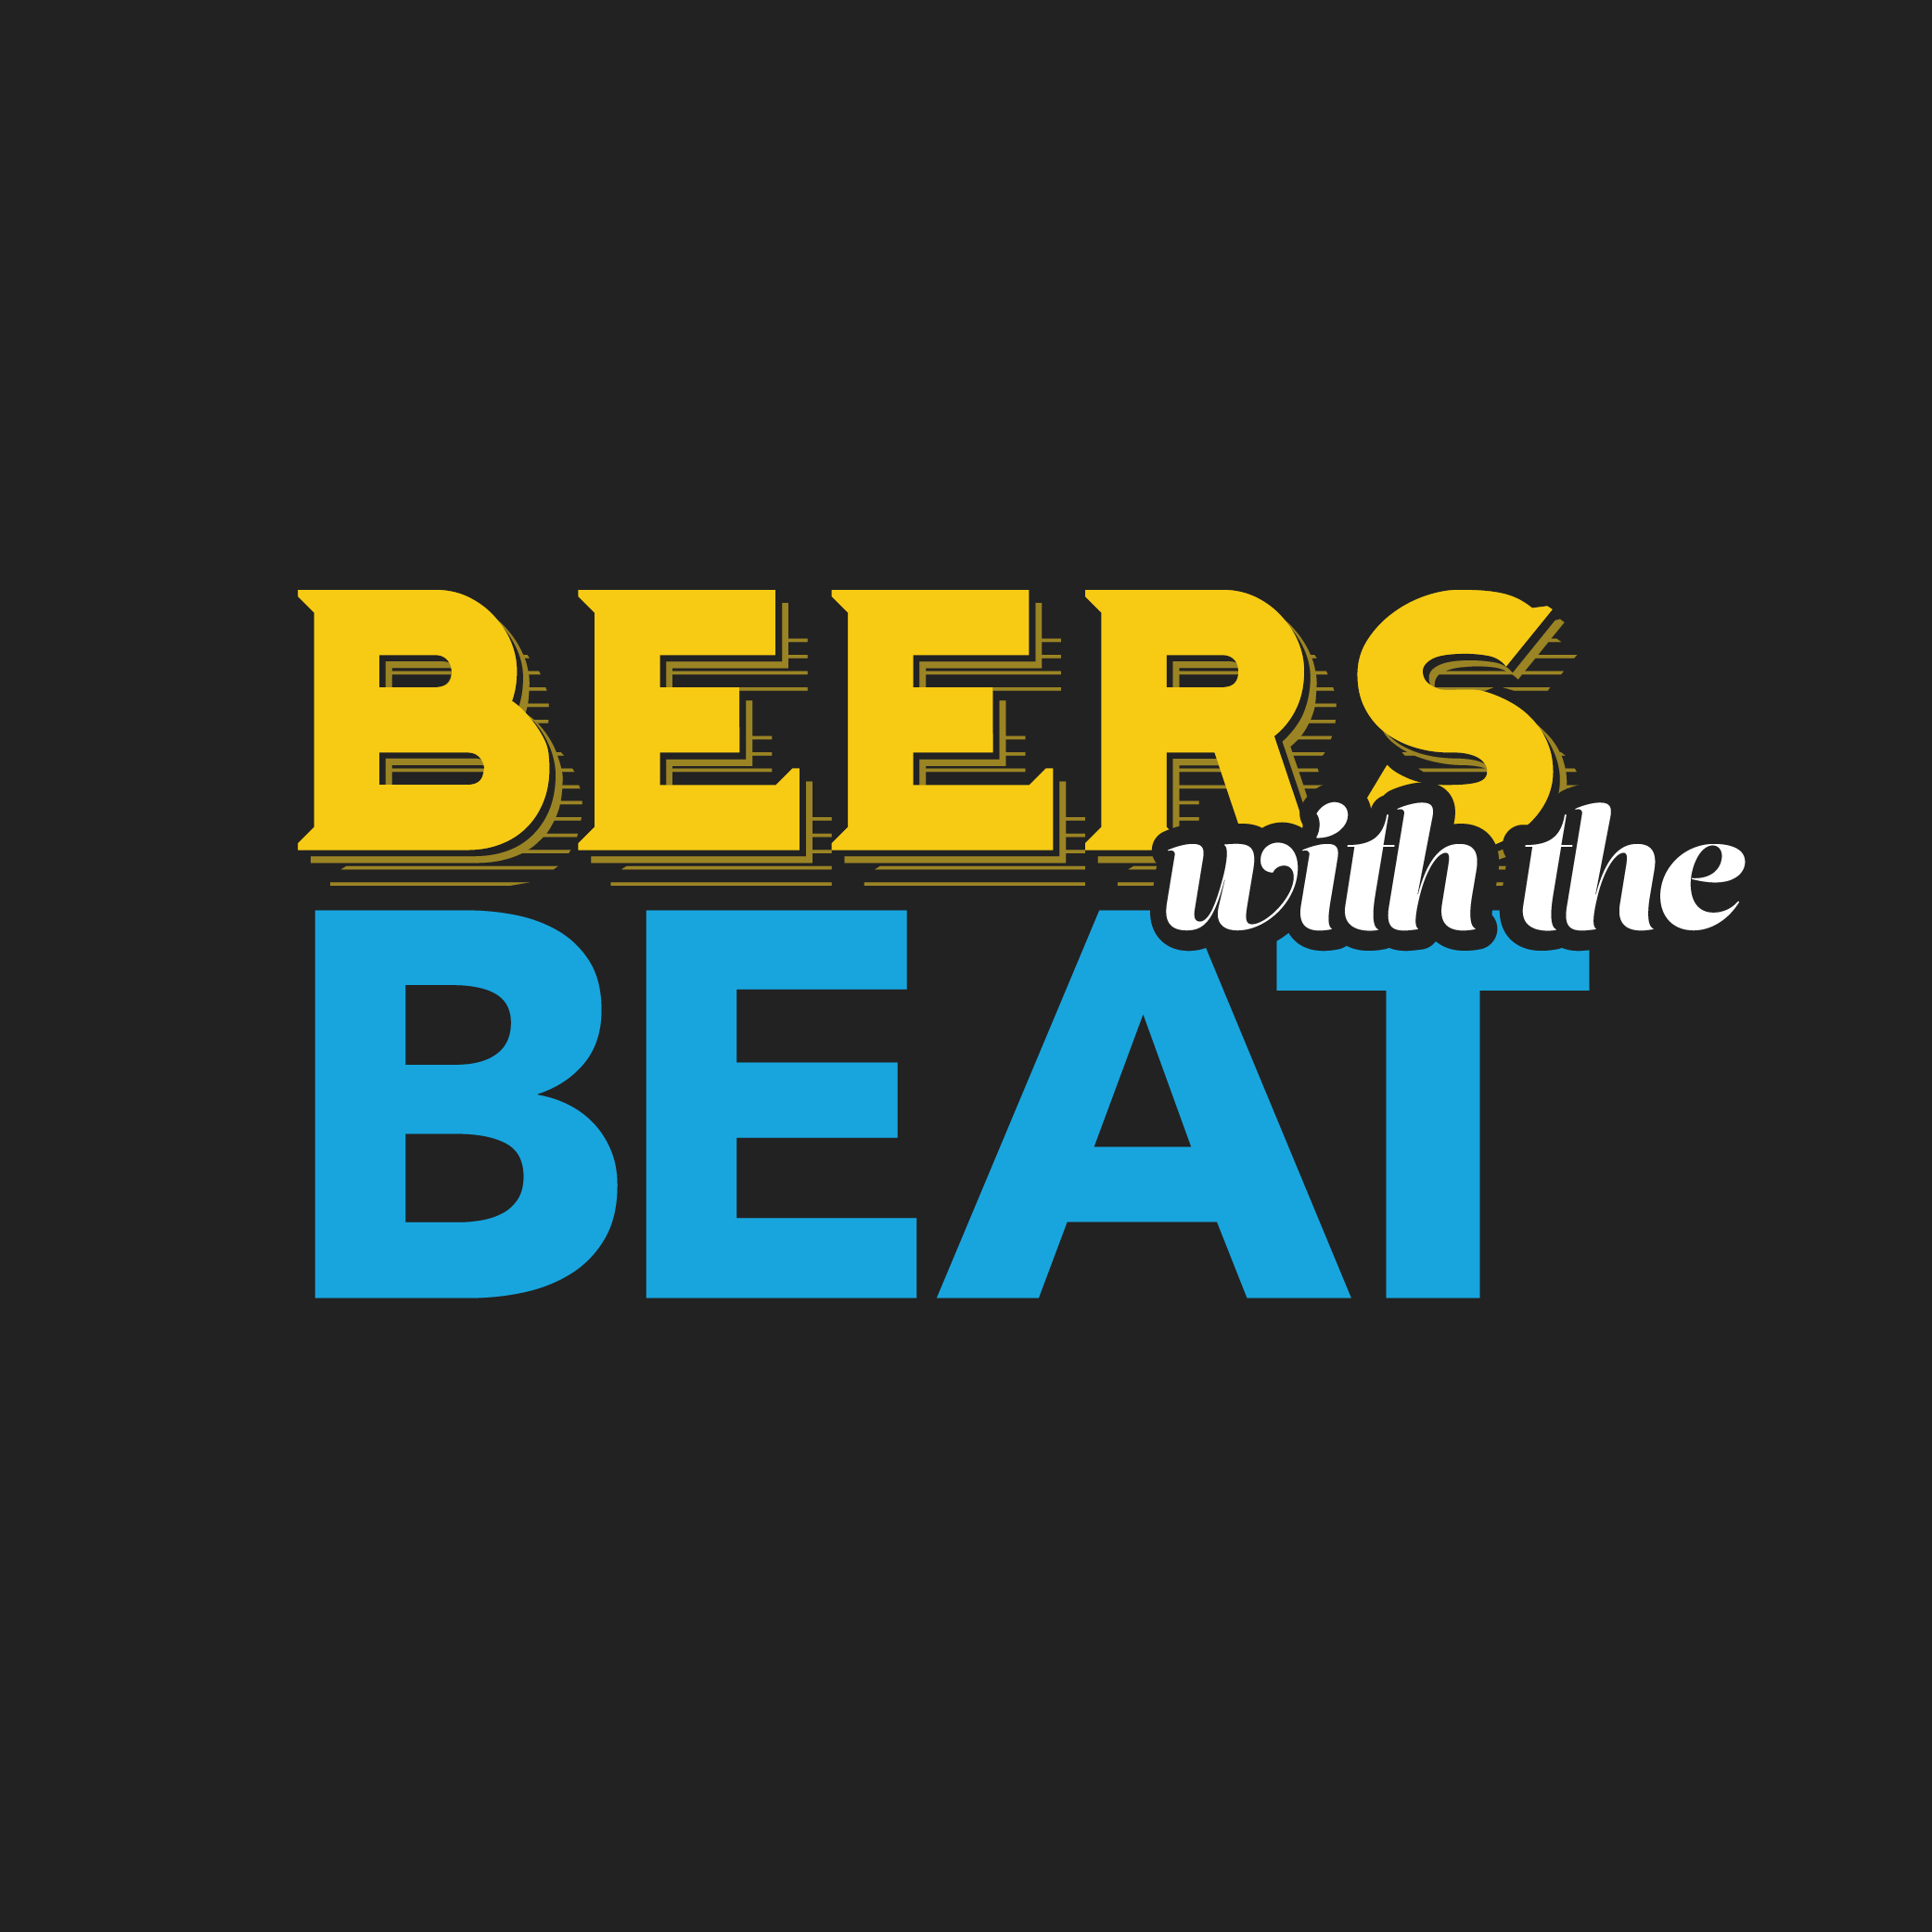 BostInno's Beers with the Beat